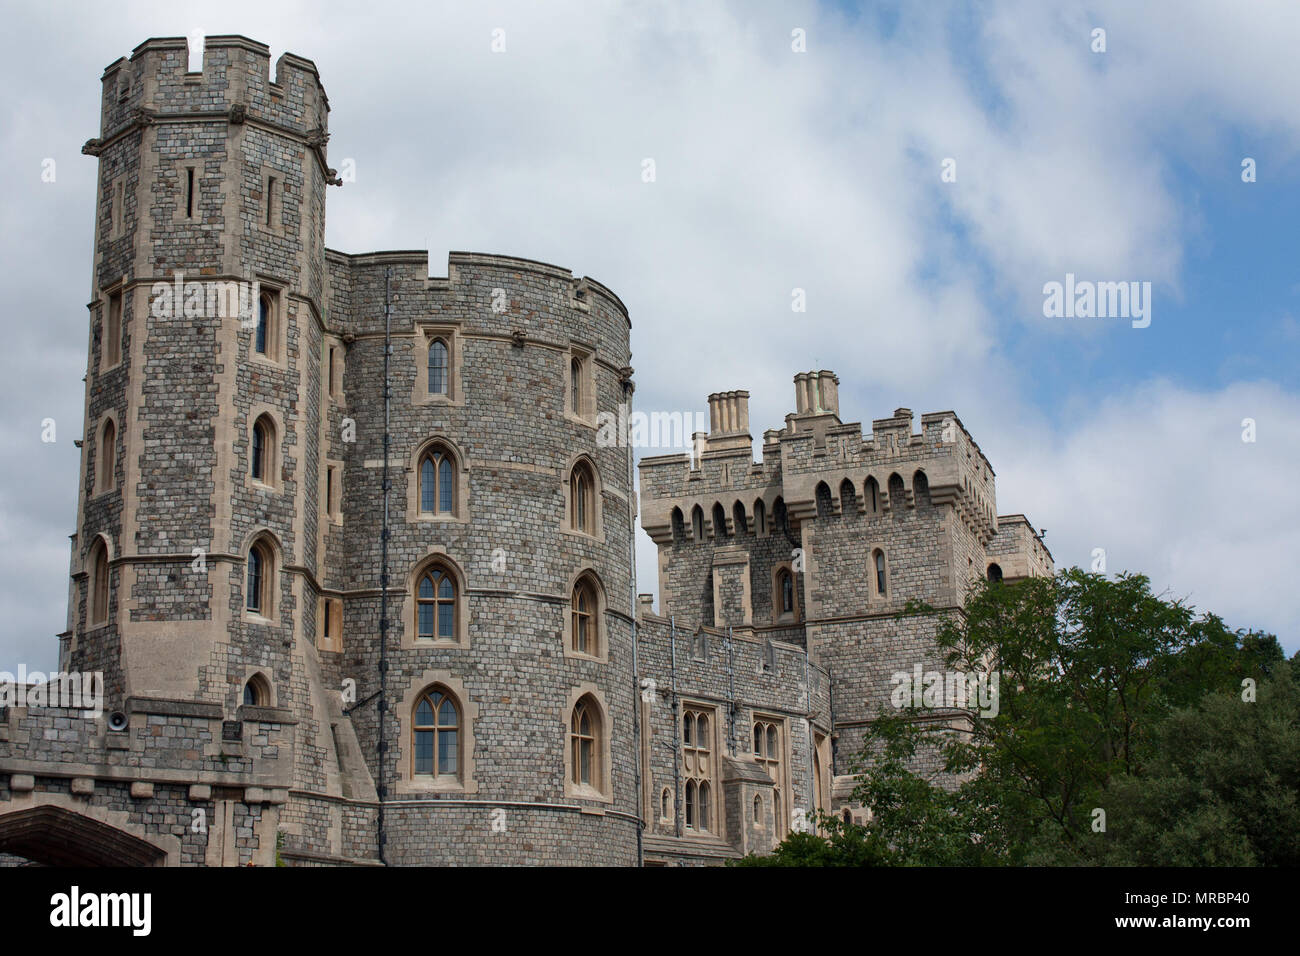 Outside towers of Windsor castle, residence of the british royal family in England, UK. - Stock Image